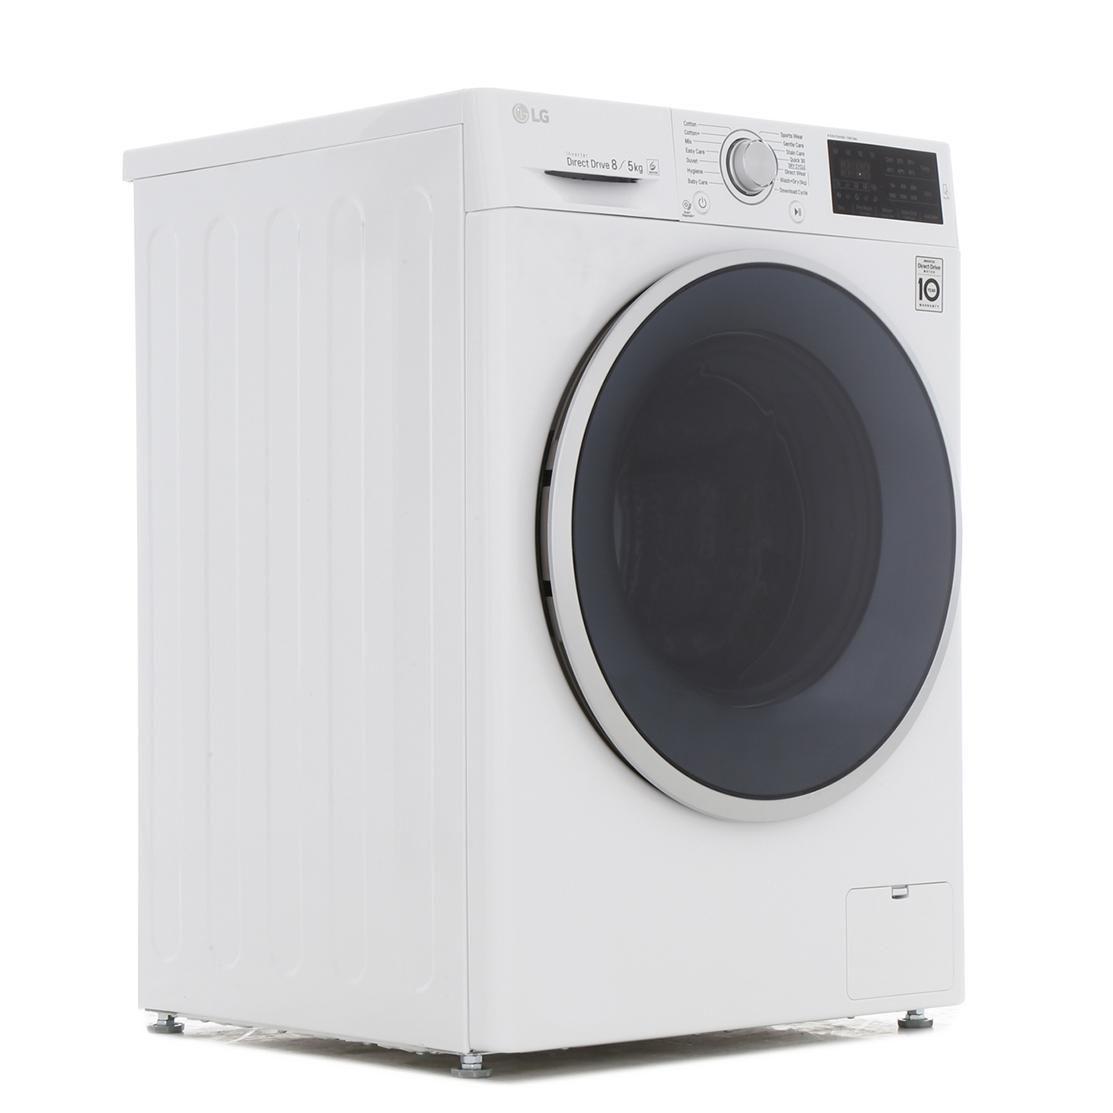 LG F4J6TM1W Condensor Washer Dryer With Smart ThinQ Connectivity